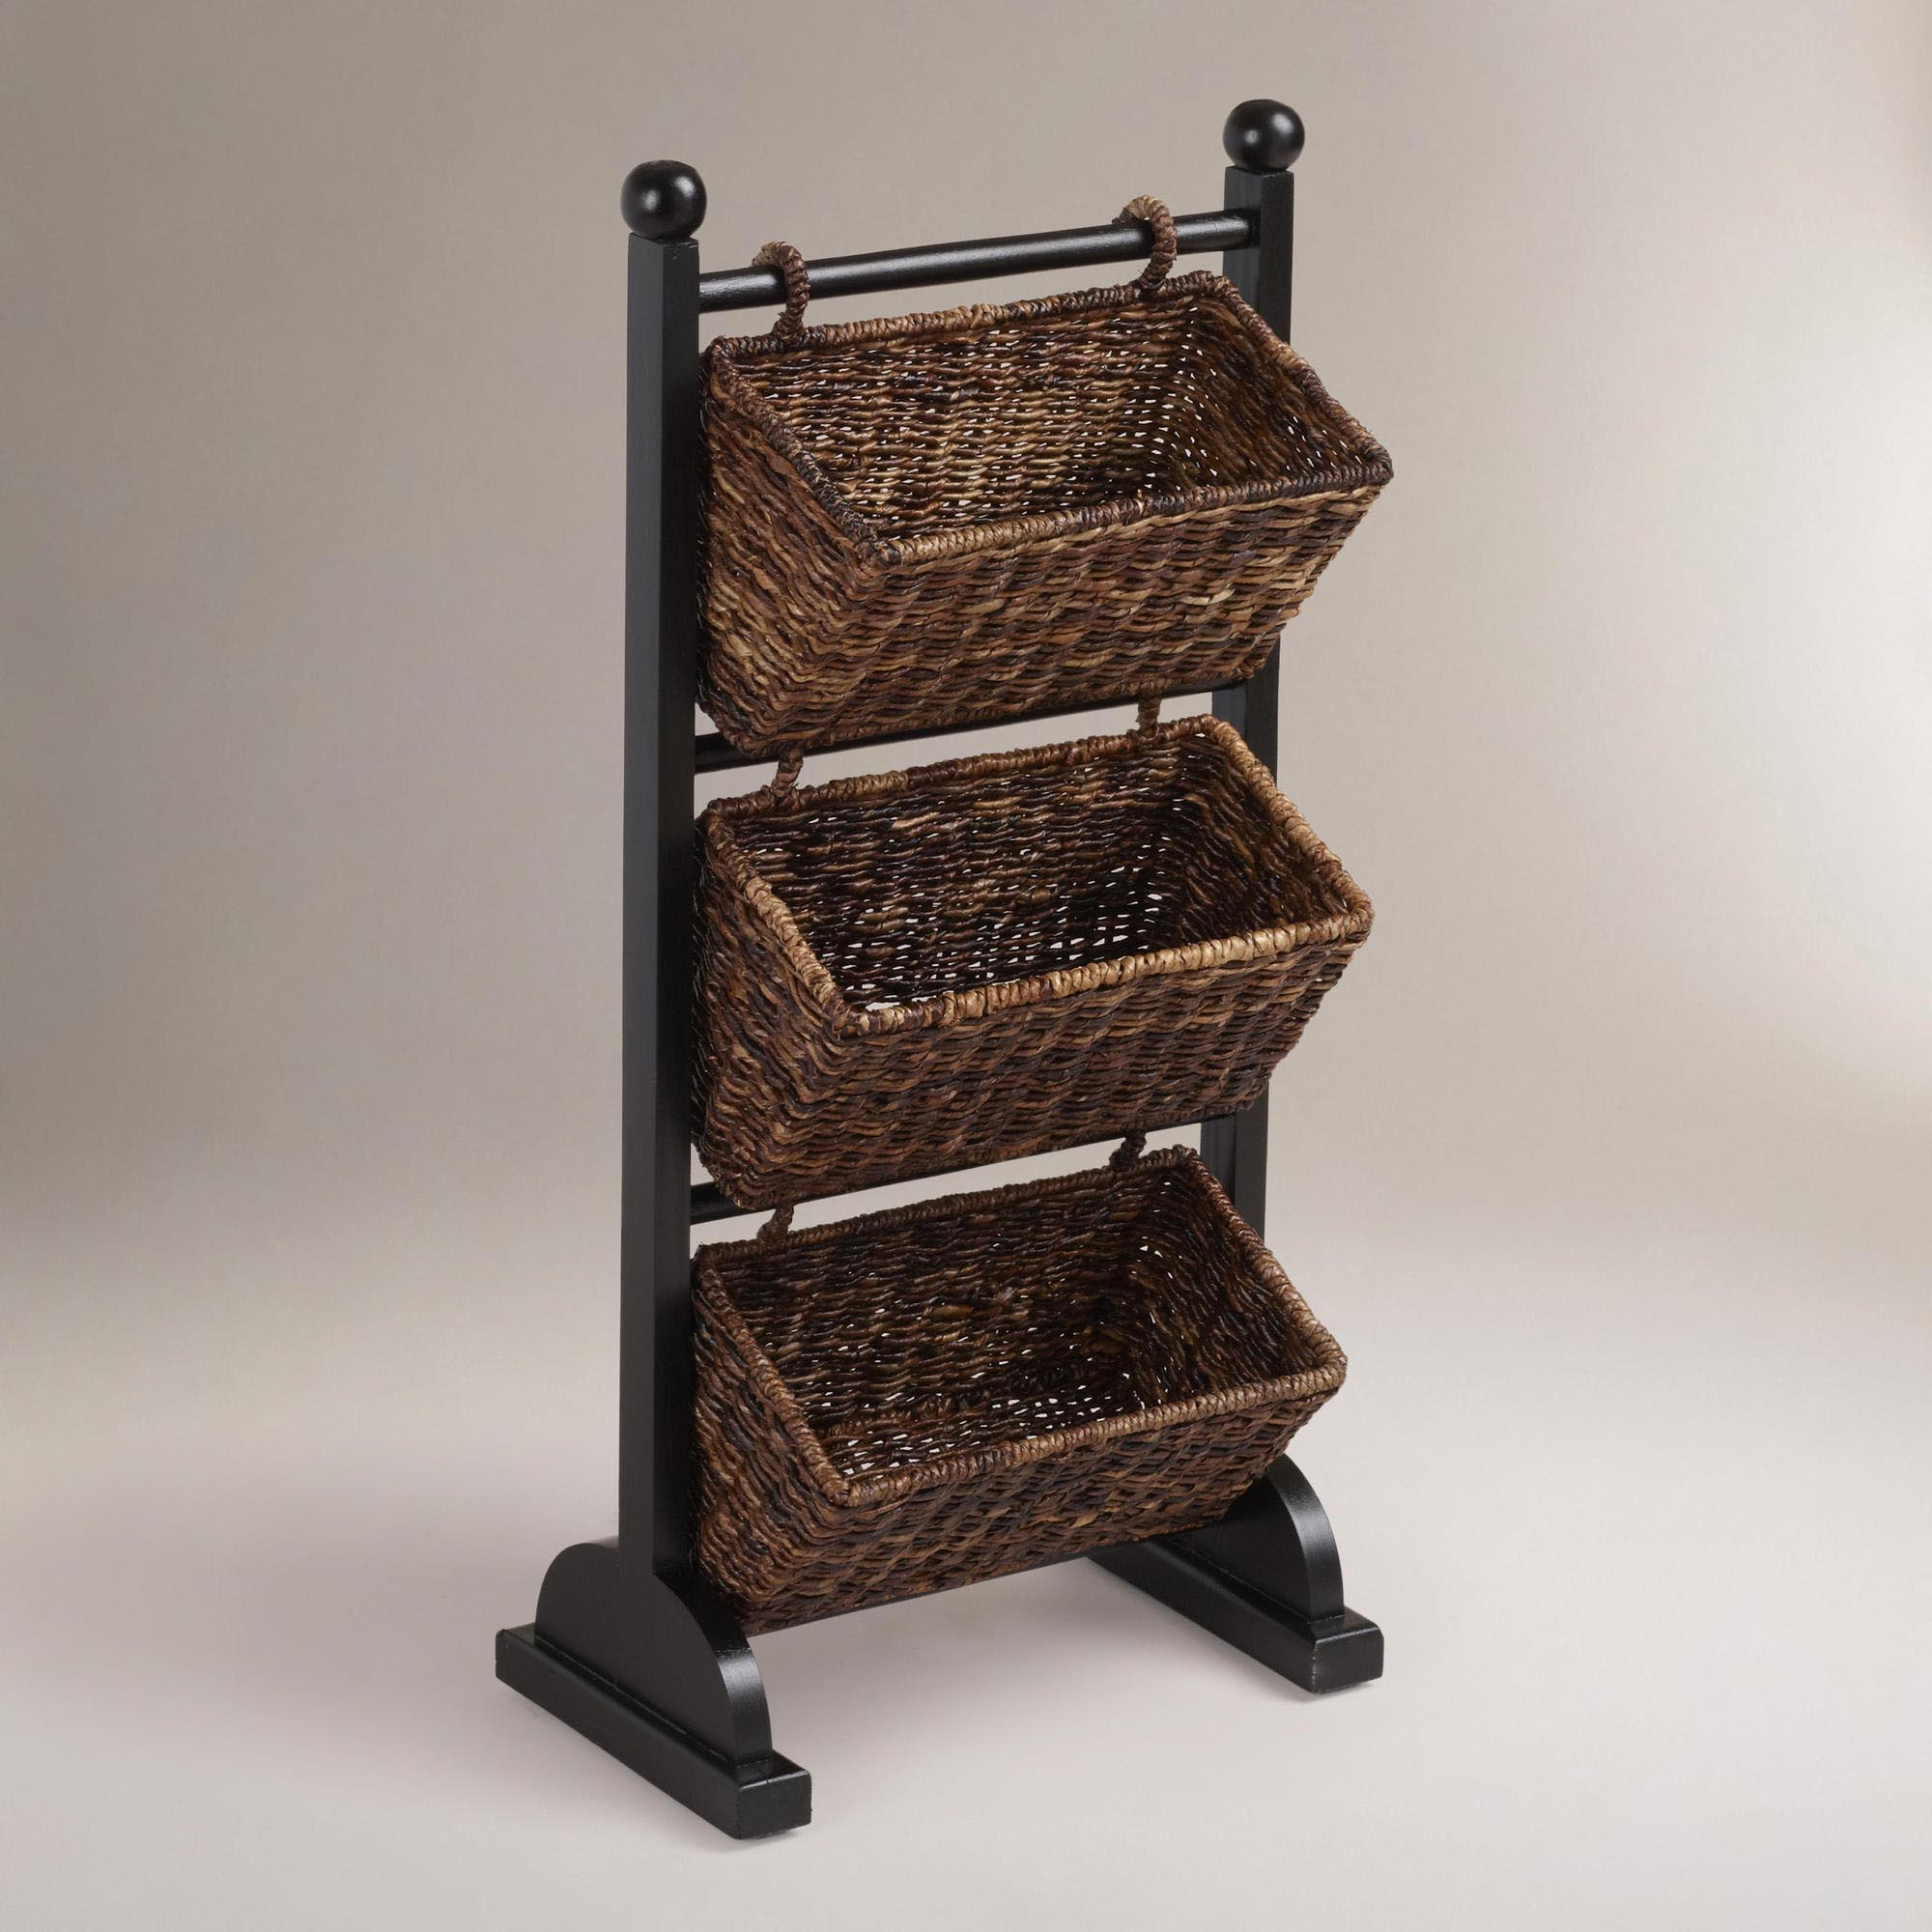 Shelf with Storage Baskets